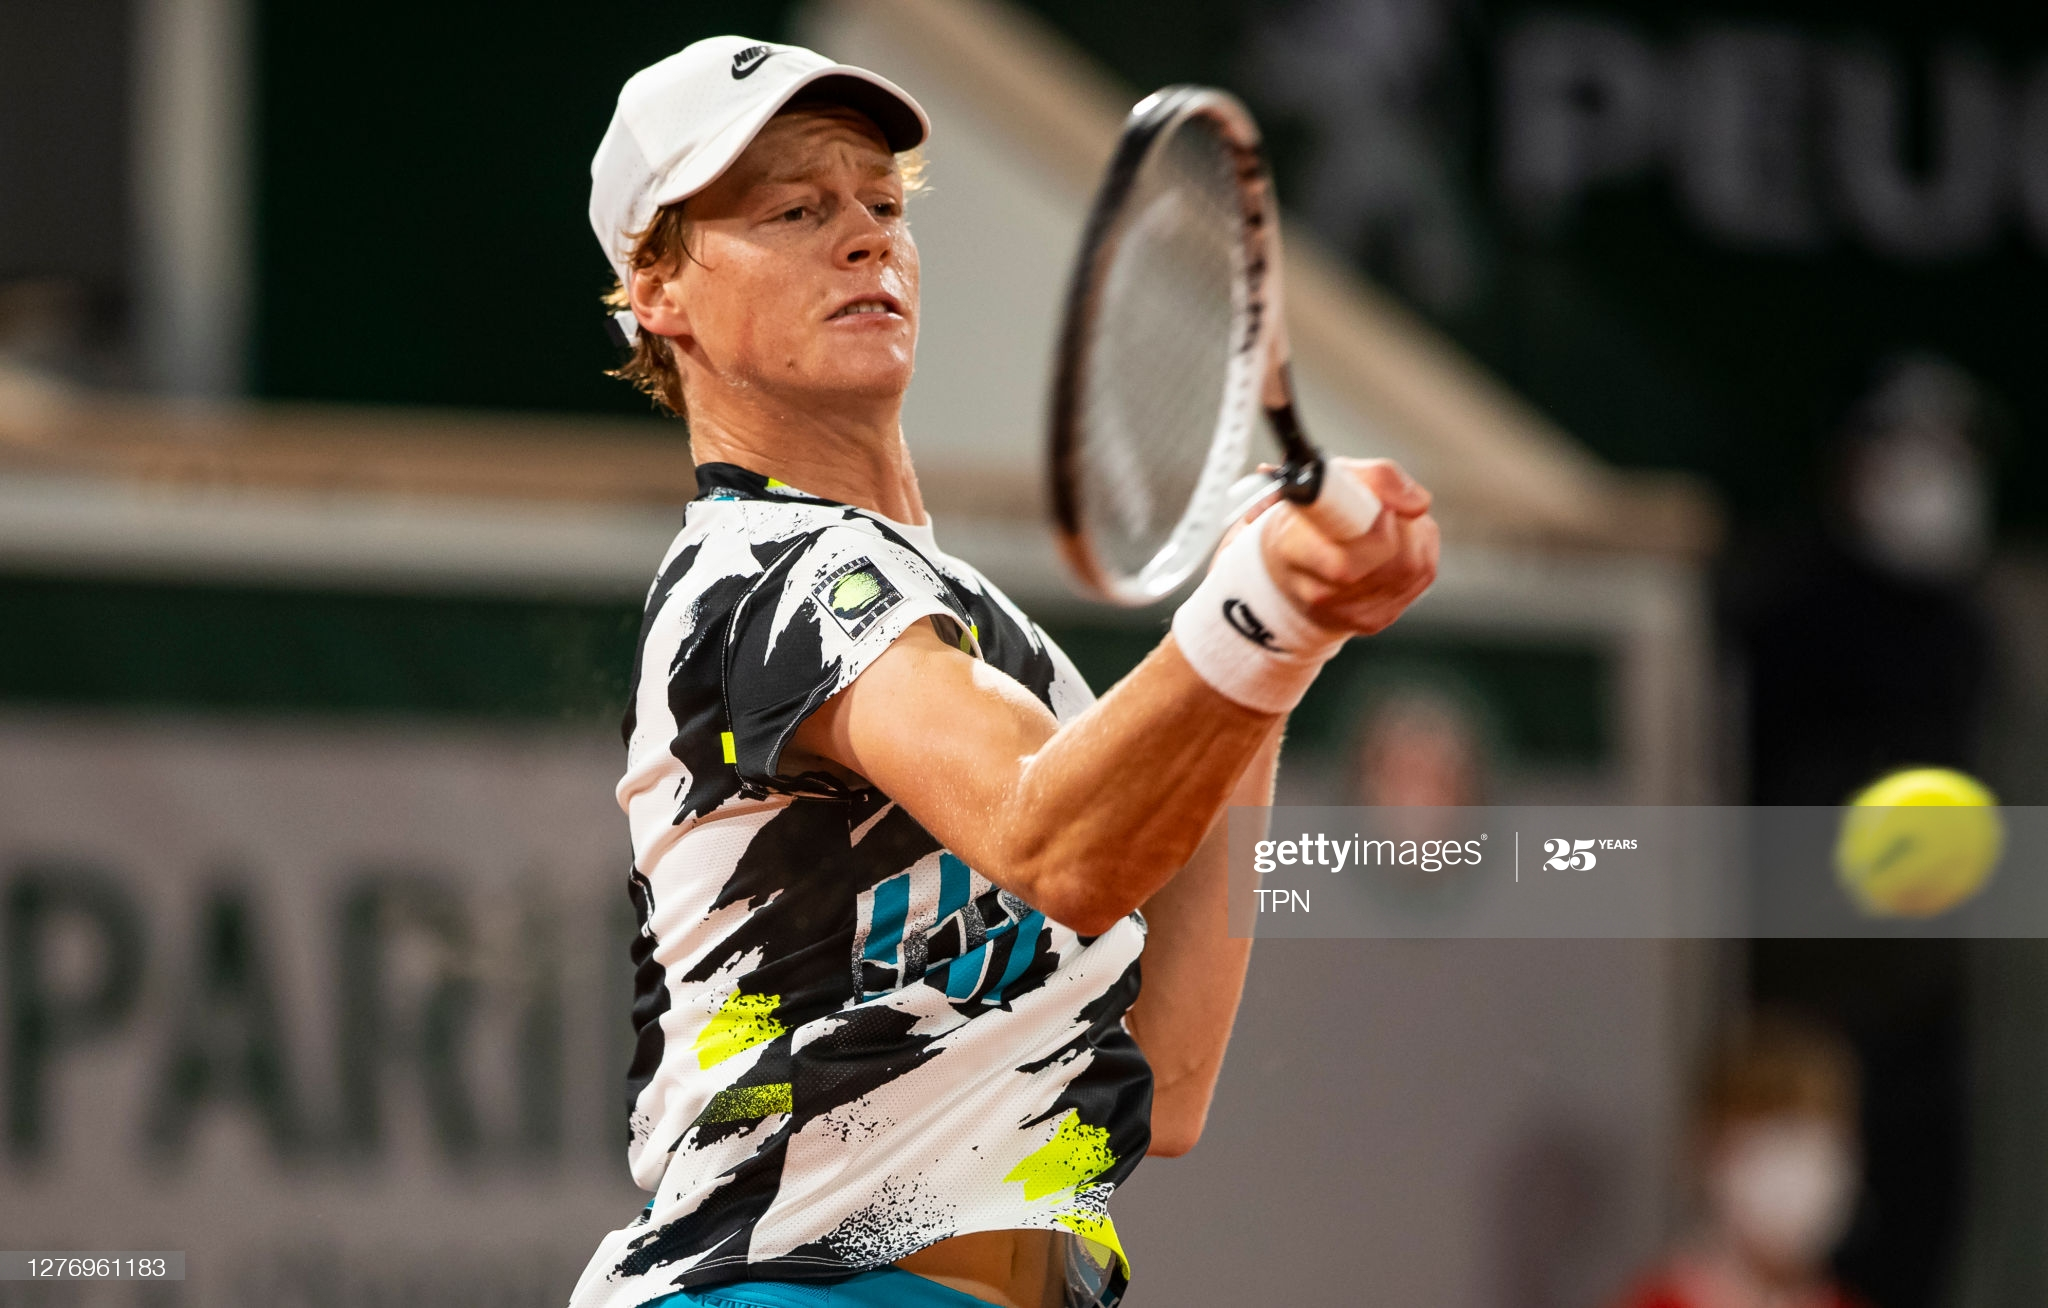 sinner day one french open 2020